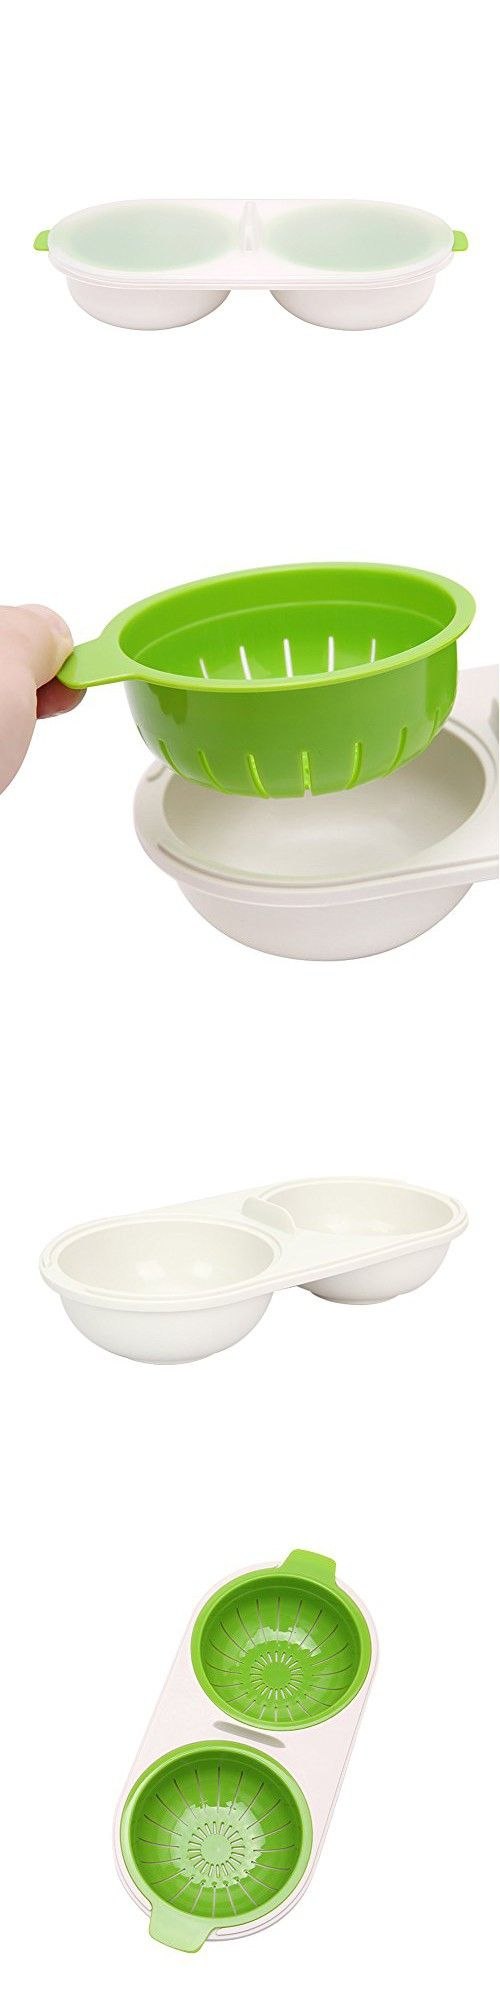 Egg Poacher, Yummy Sam 2cup Silicone Egg Poacher Cups Poaching Pods For  Cooking